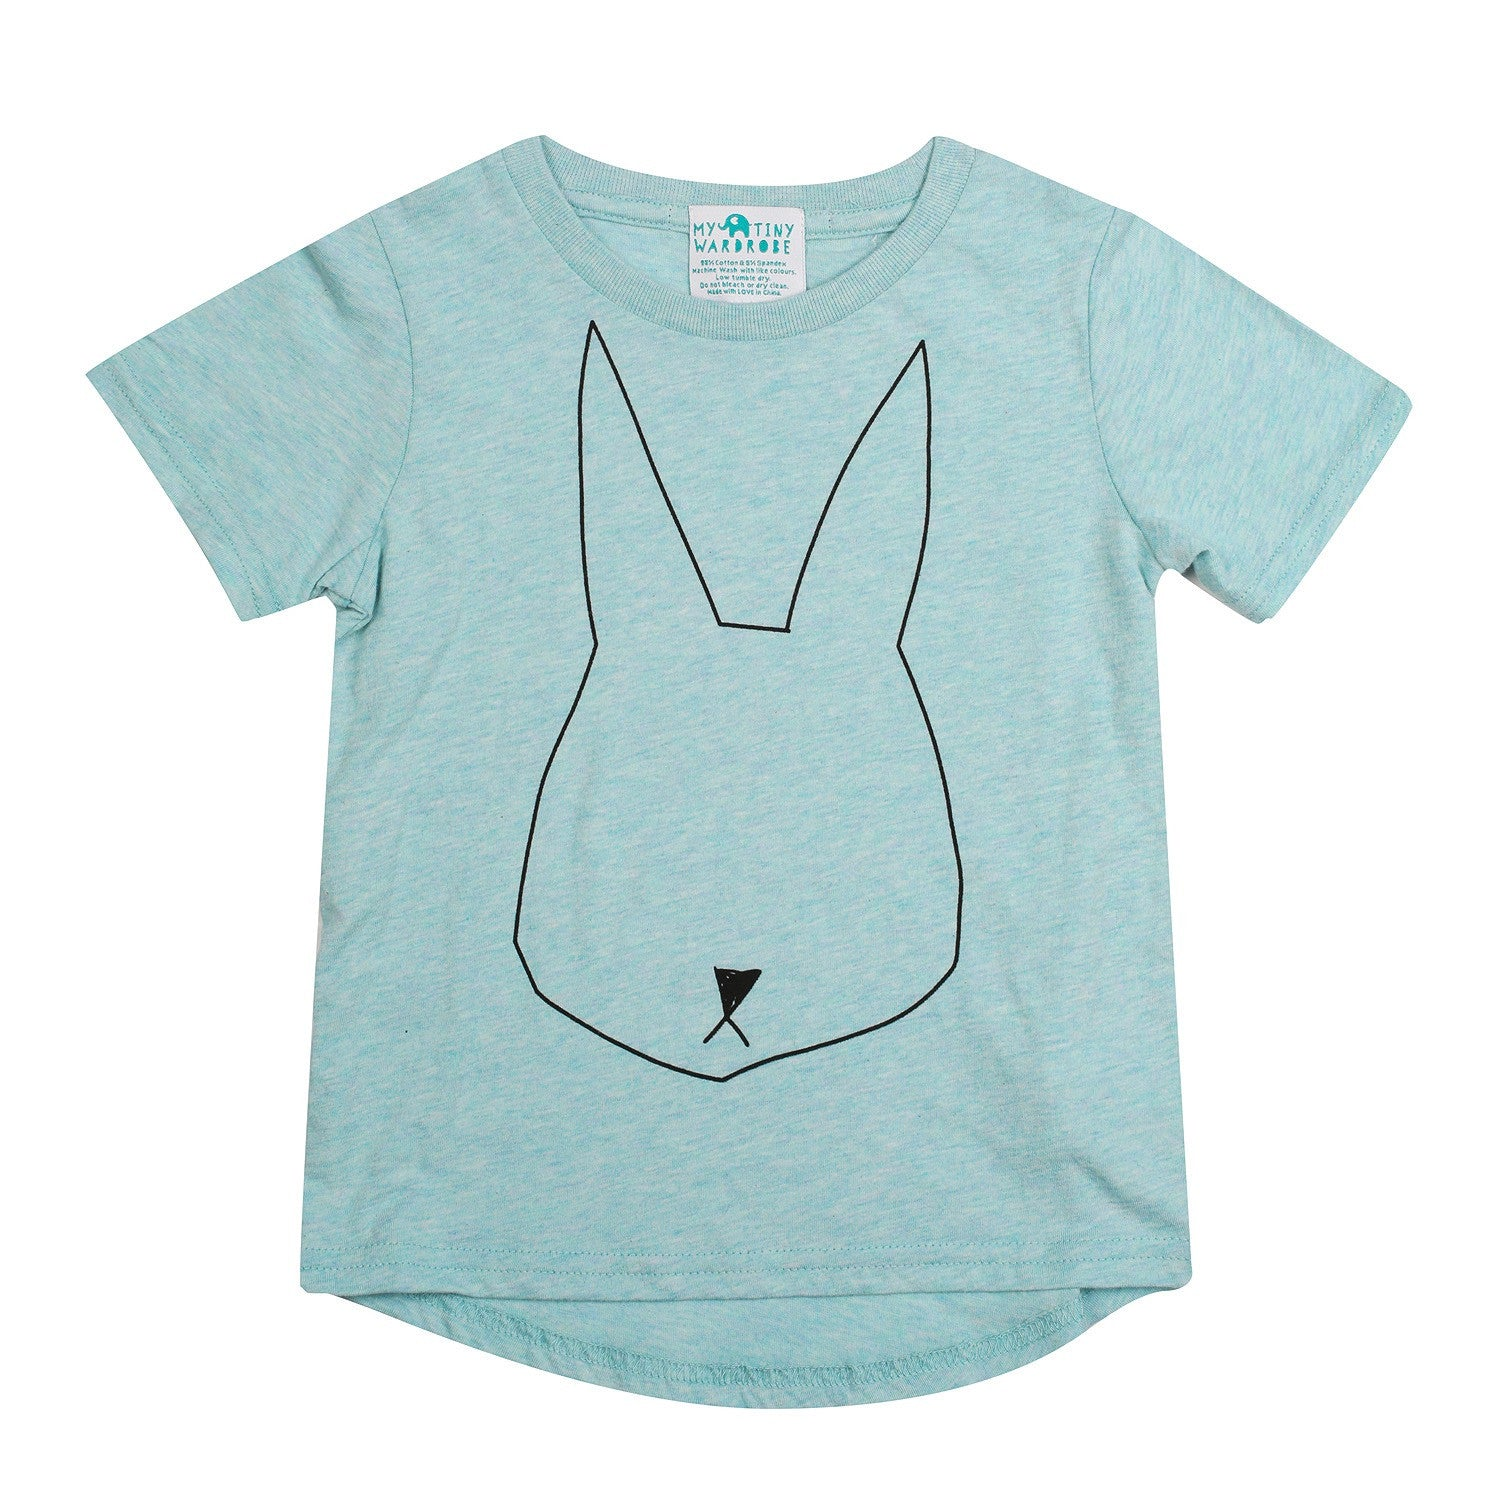 Boys Easter T-Shirt, Geometric Print, 100% Cotton, Designed In Ausralia